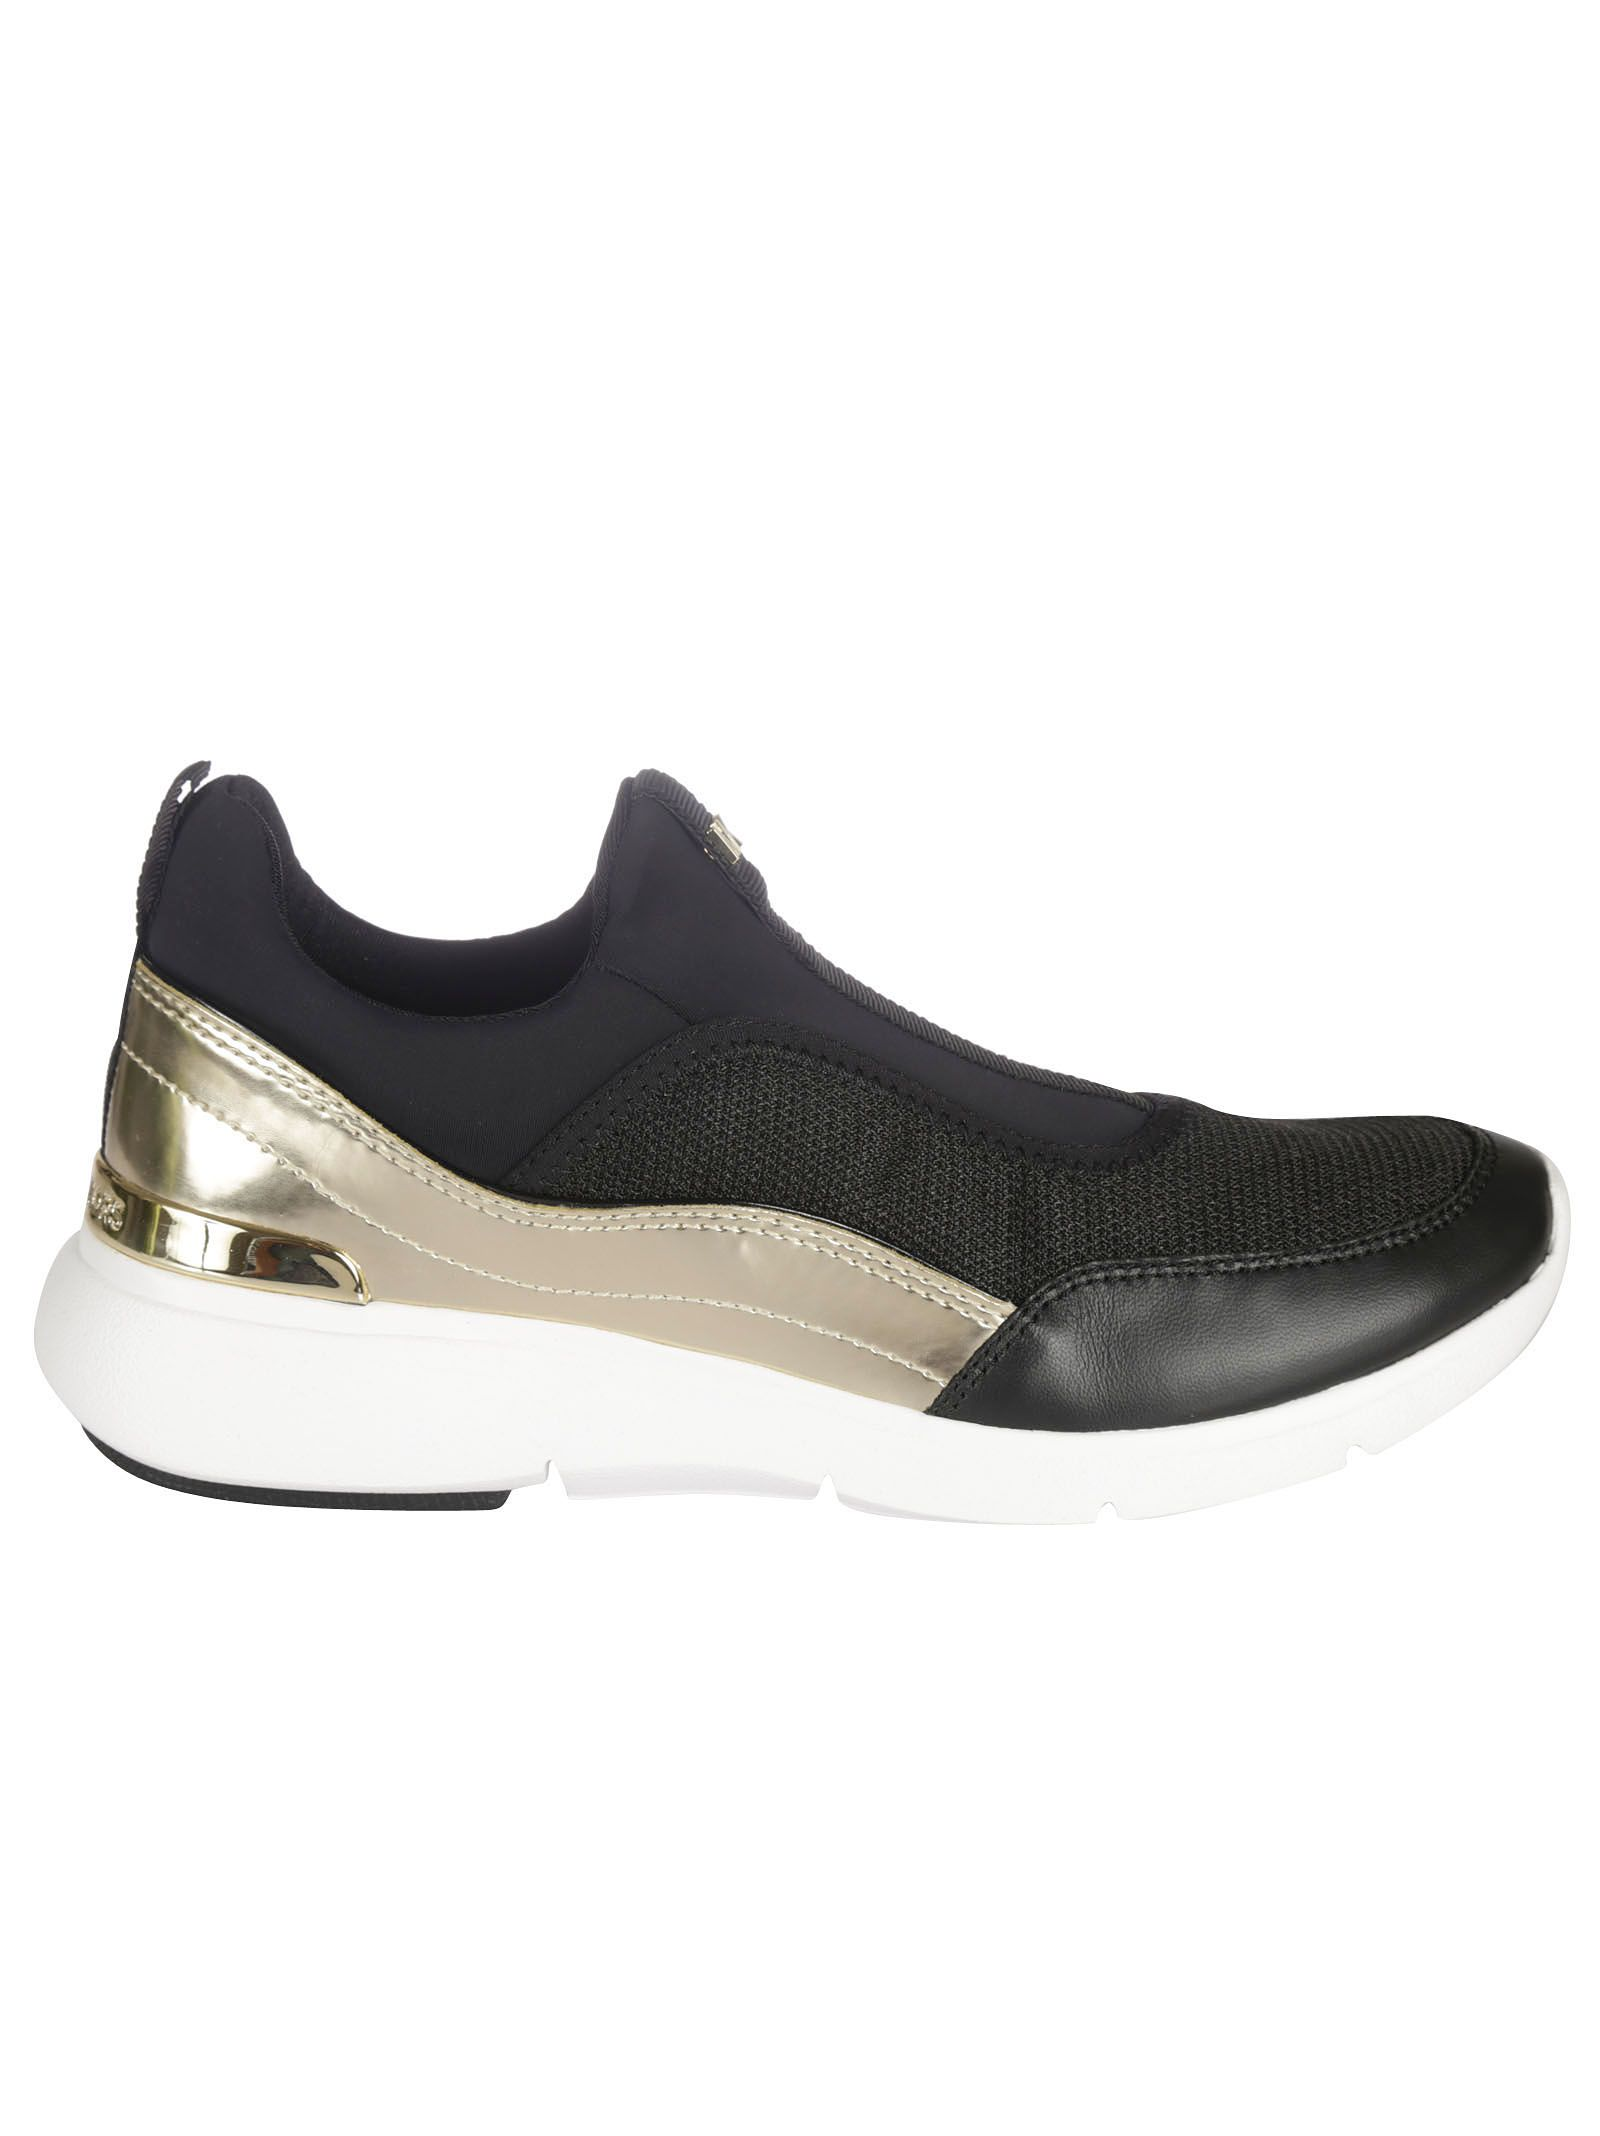 michael kors female 220183 black gold ace mesh sneakers